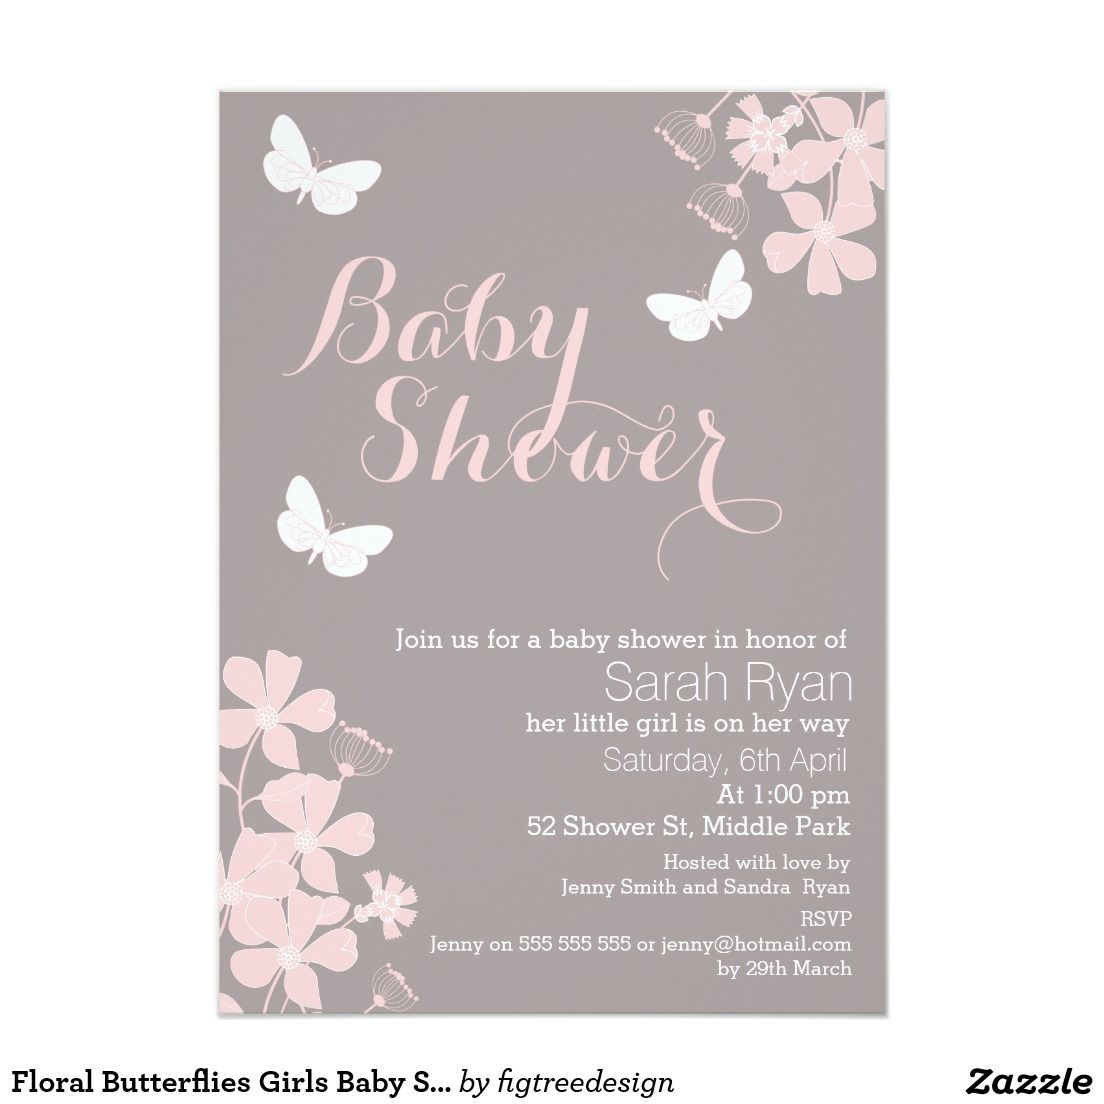 Floral Butterflies Girls Baby Shower Invitation | Shower invitations